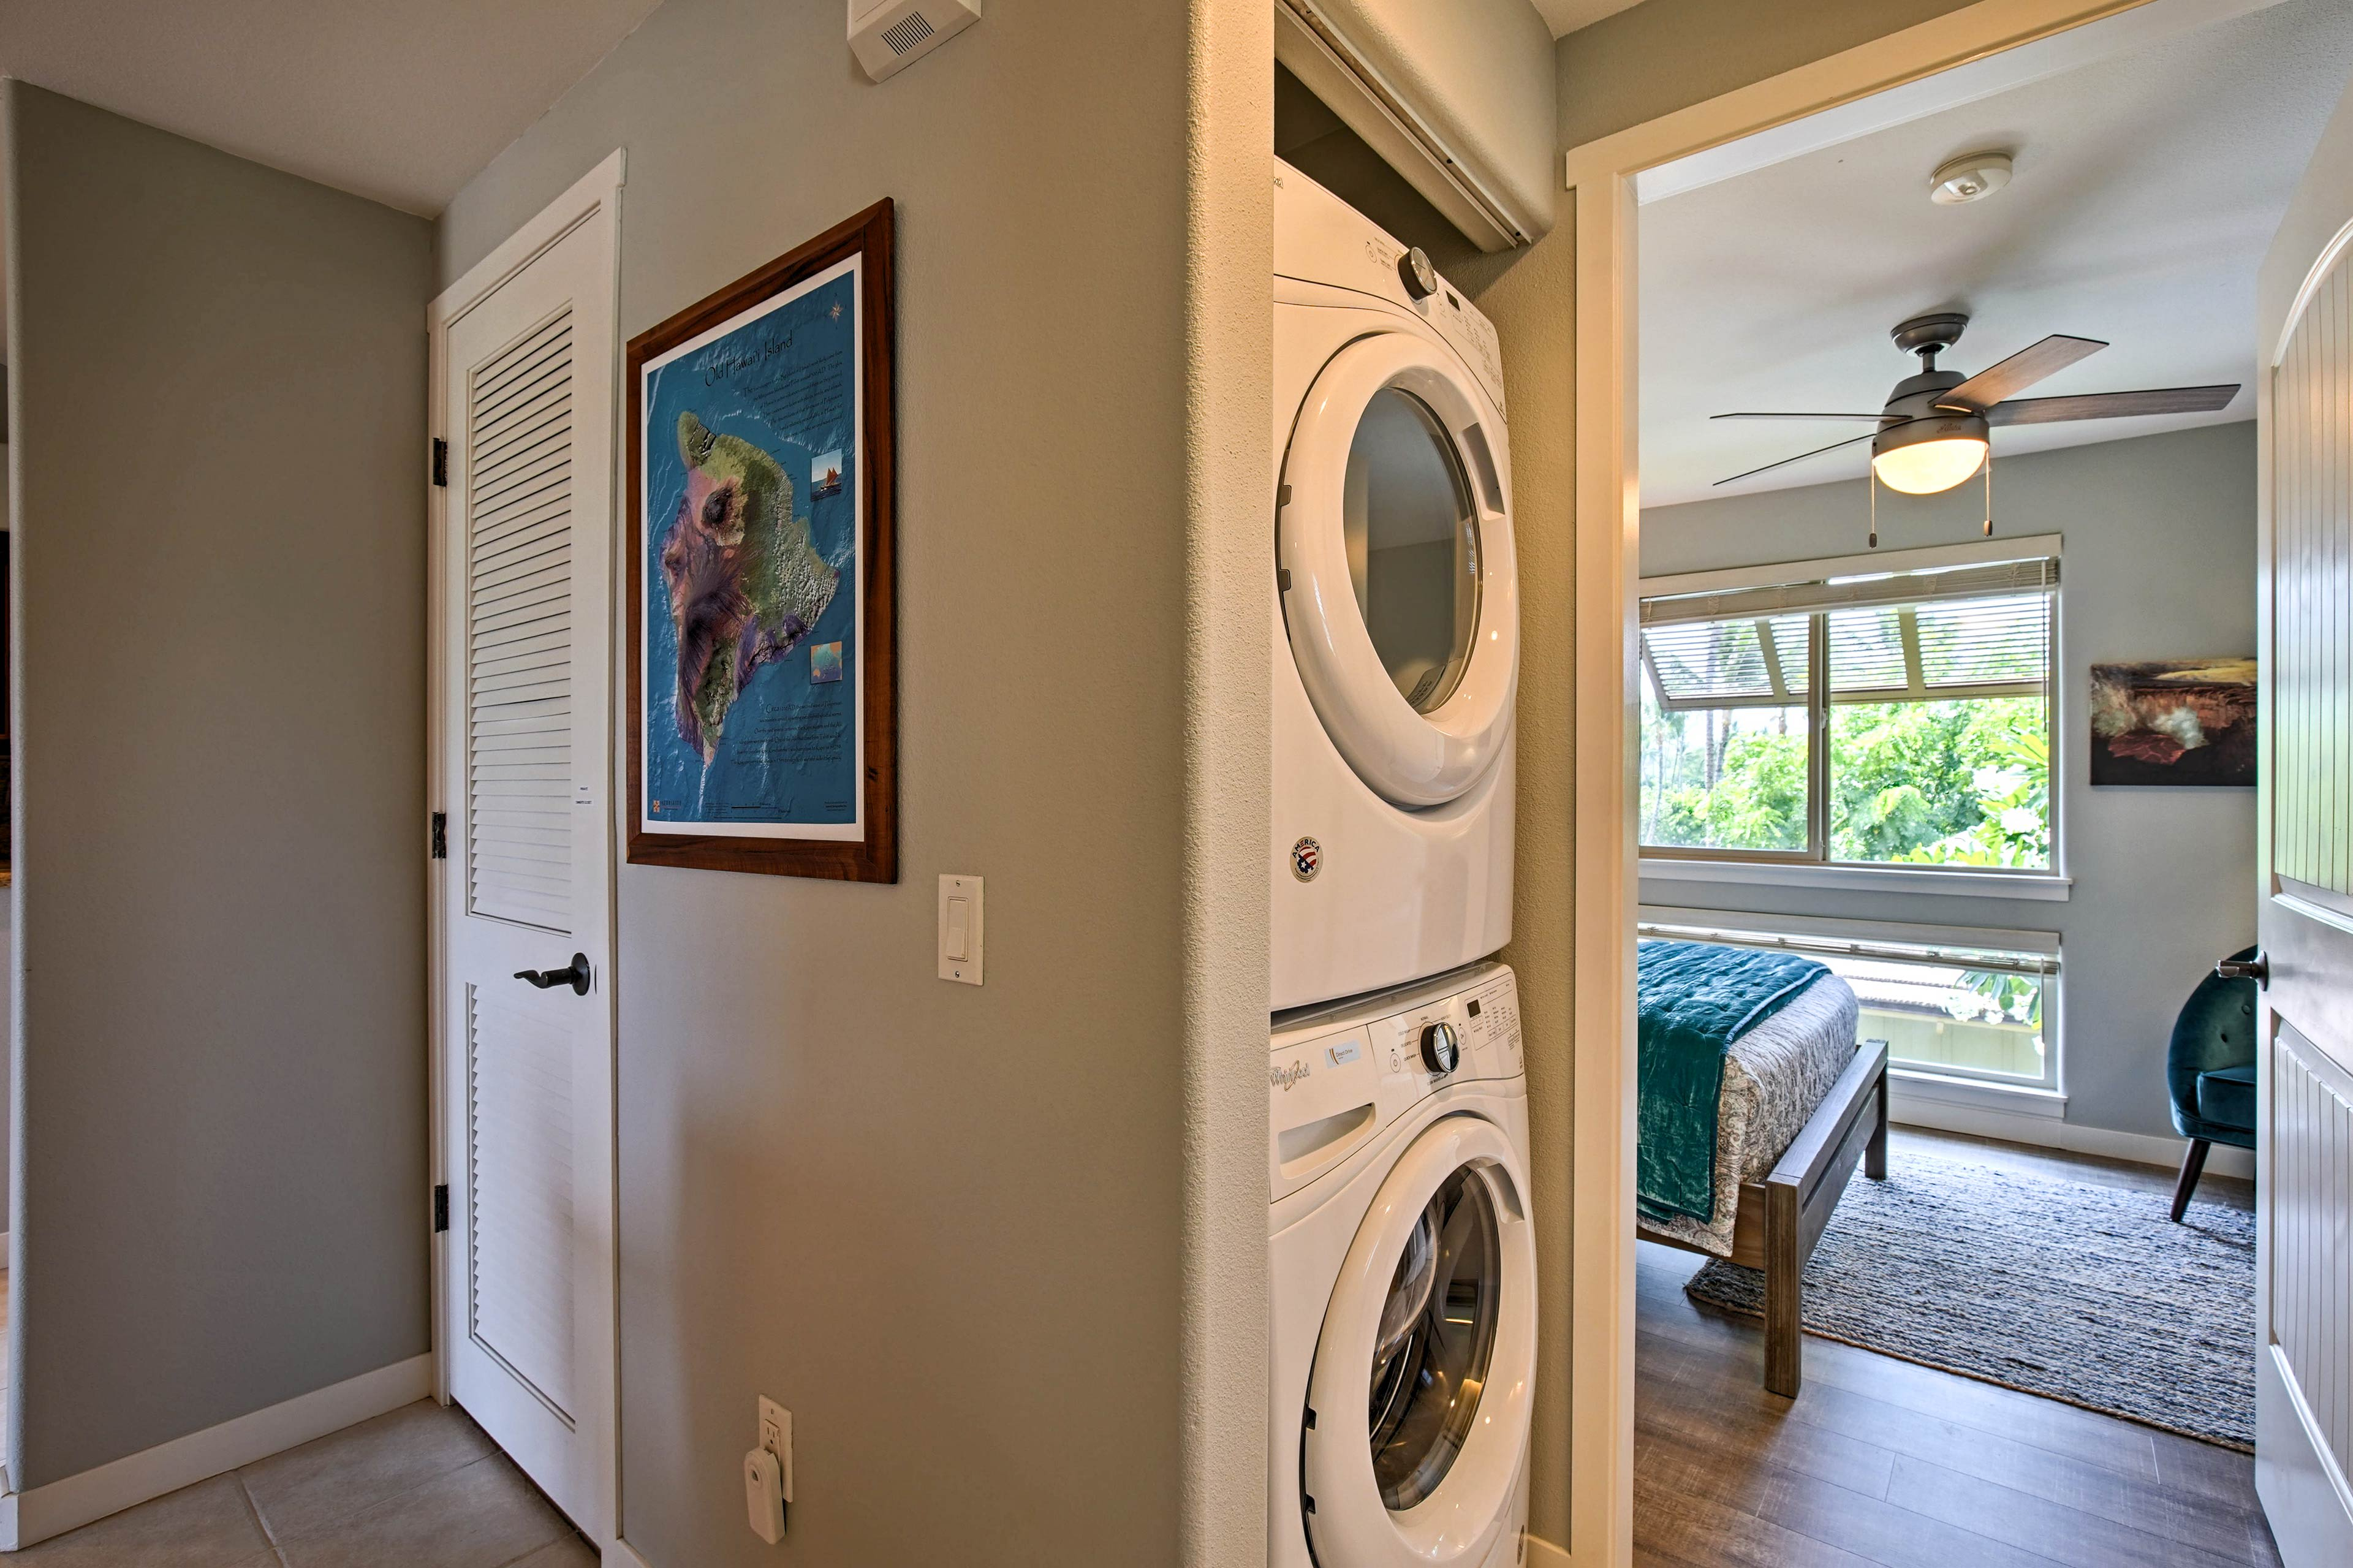 Keep your wardrobe spotless thanks to in-unit laundry machines.